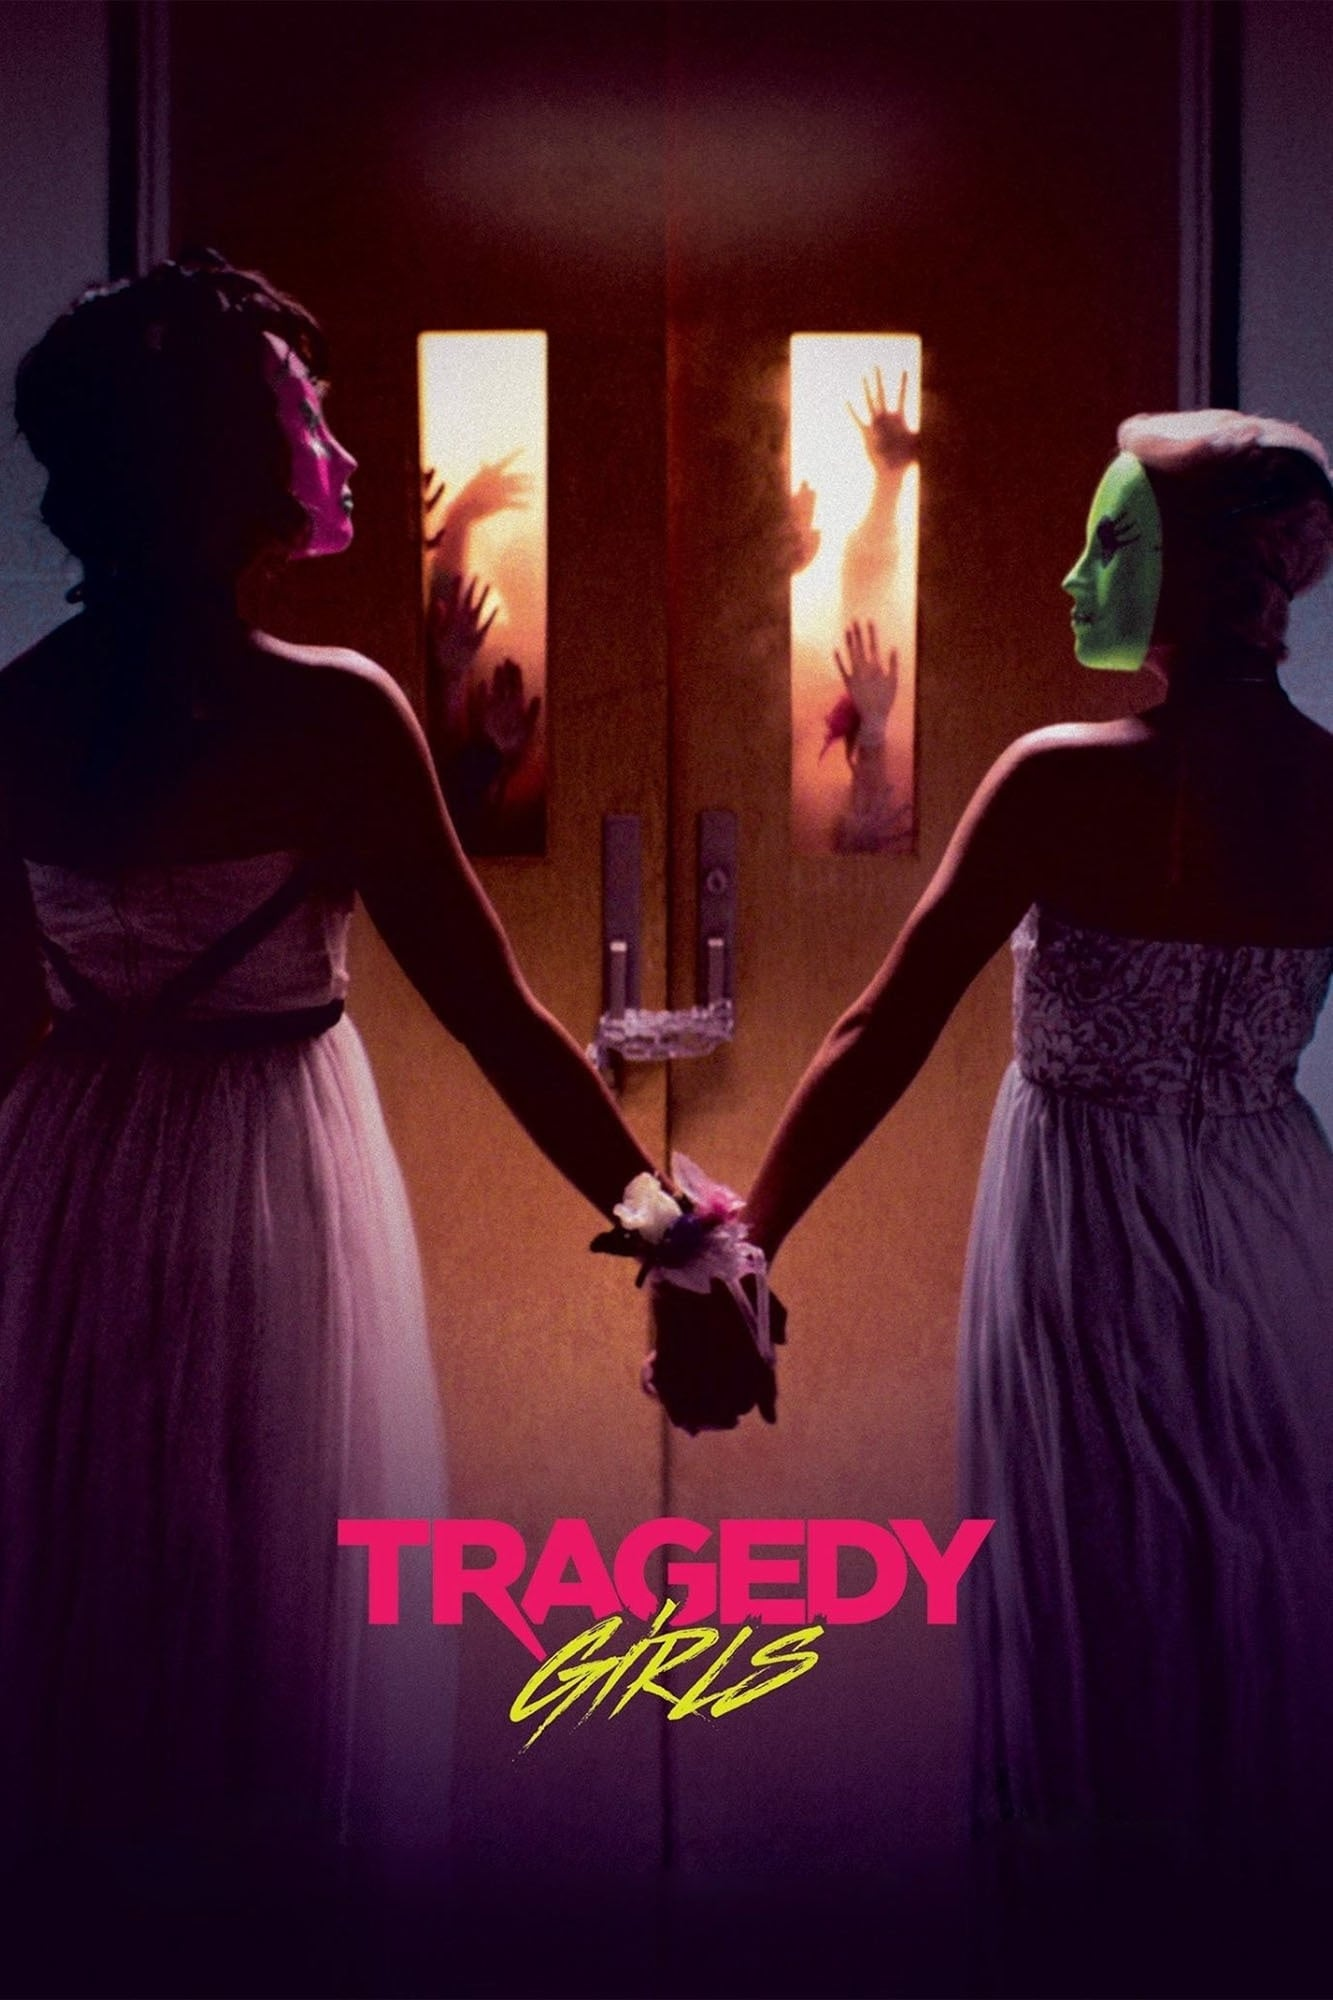 image for Tragedy Girls